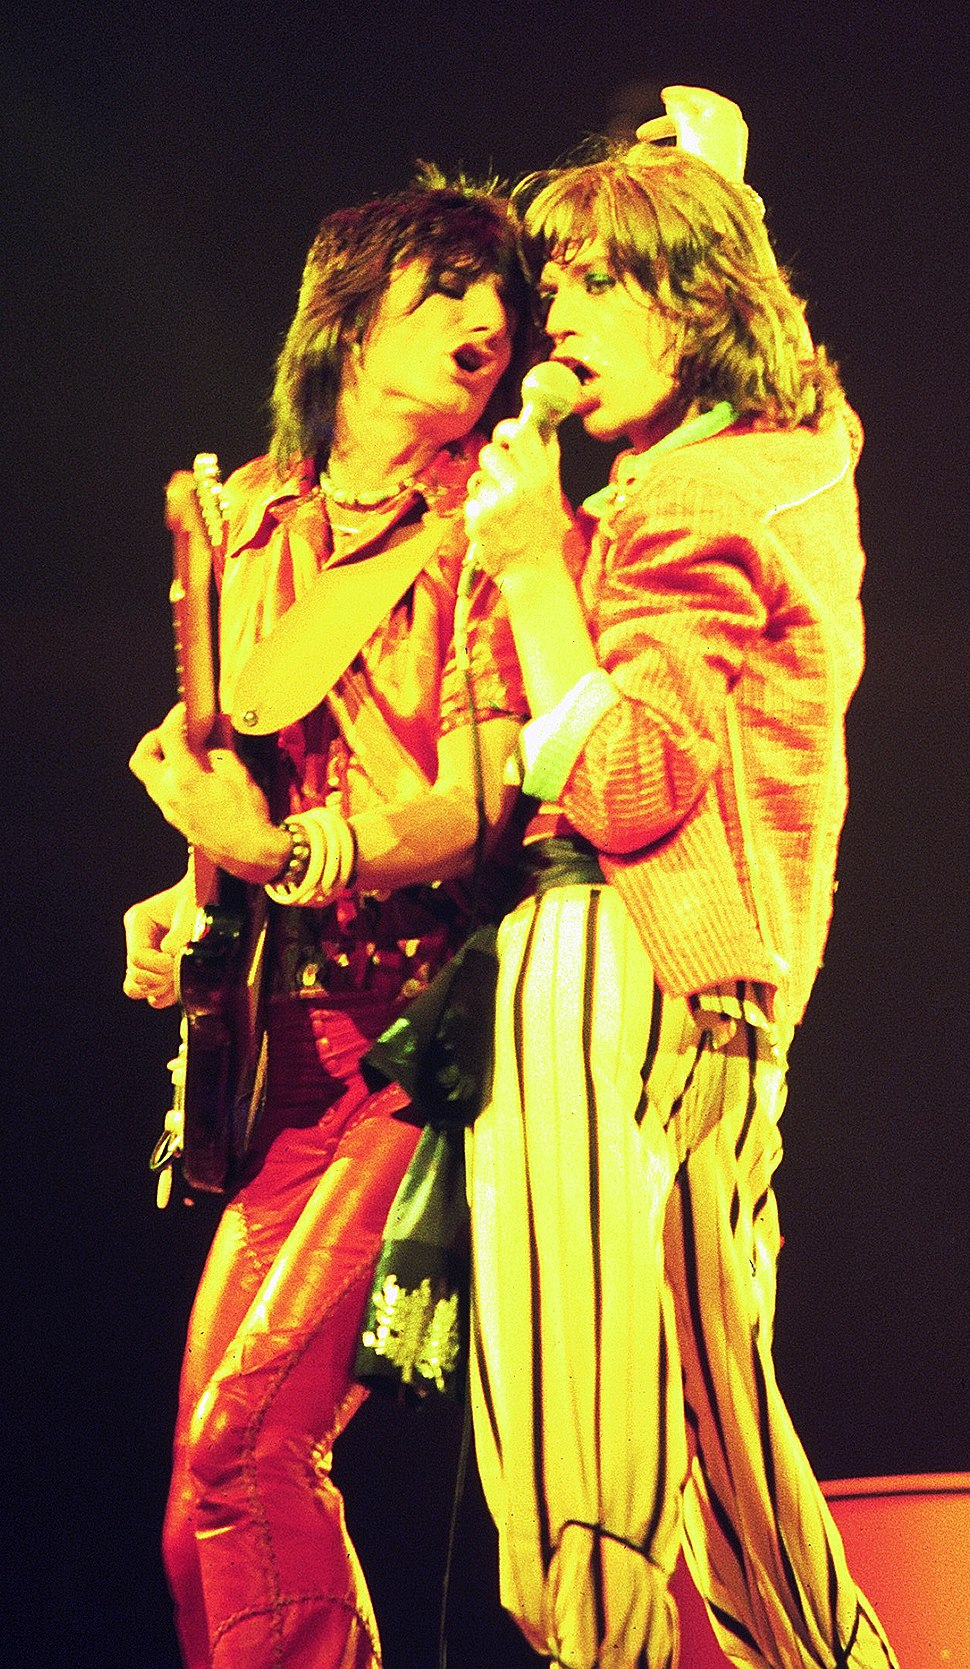 Mick Jagger and Ron Wood - Rolling Stones - 1975